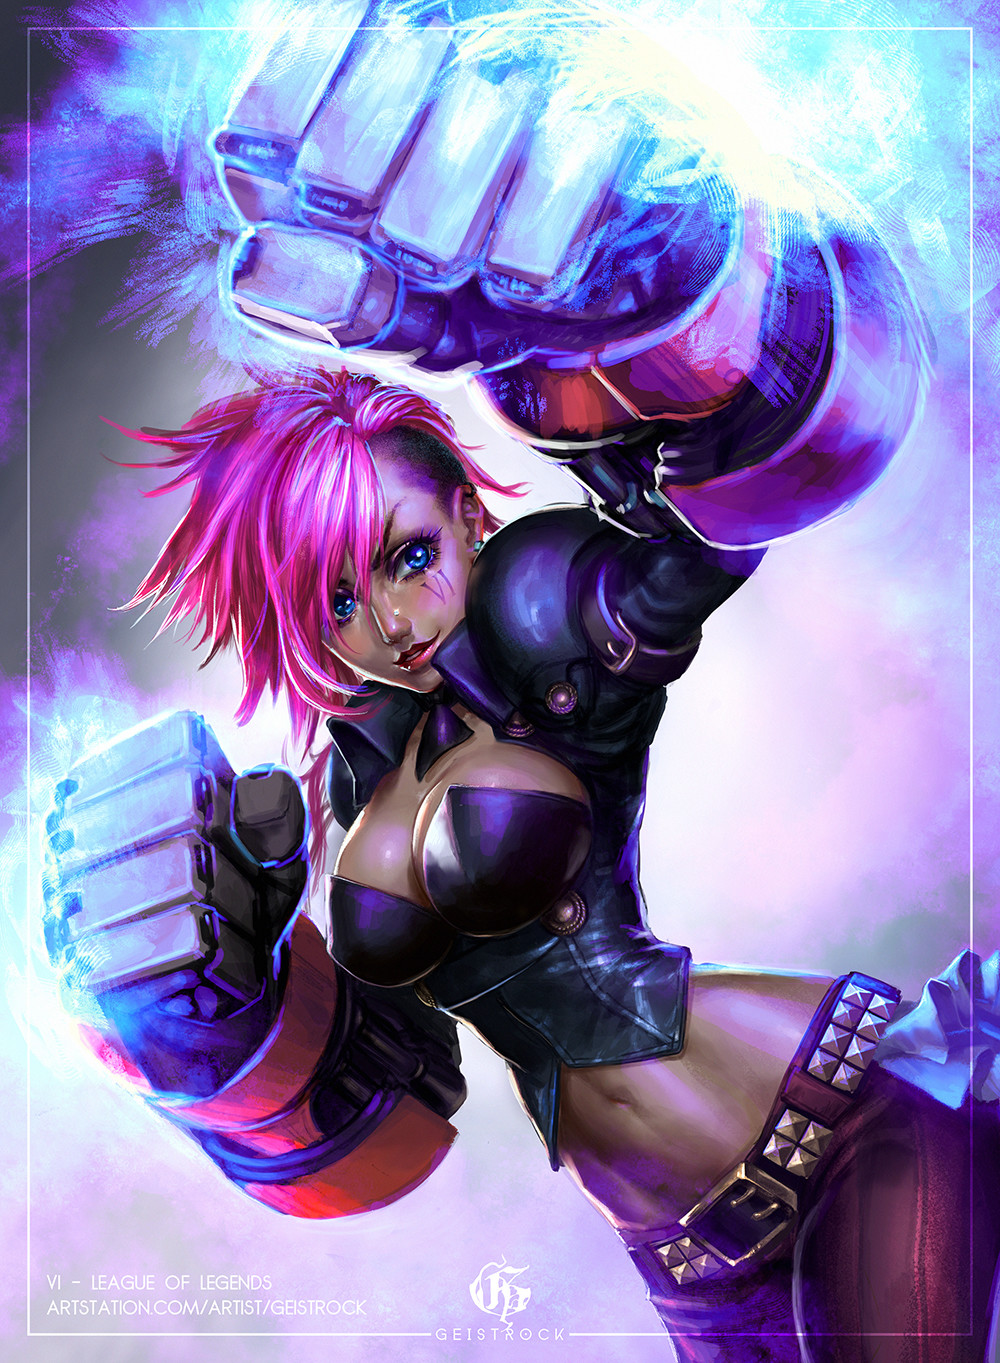 VI - League of Legends